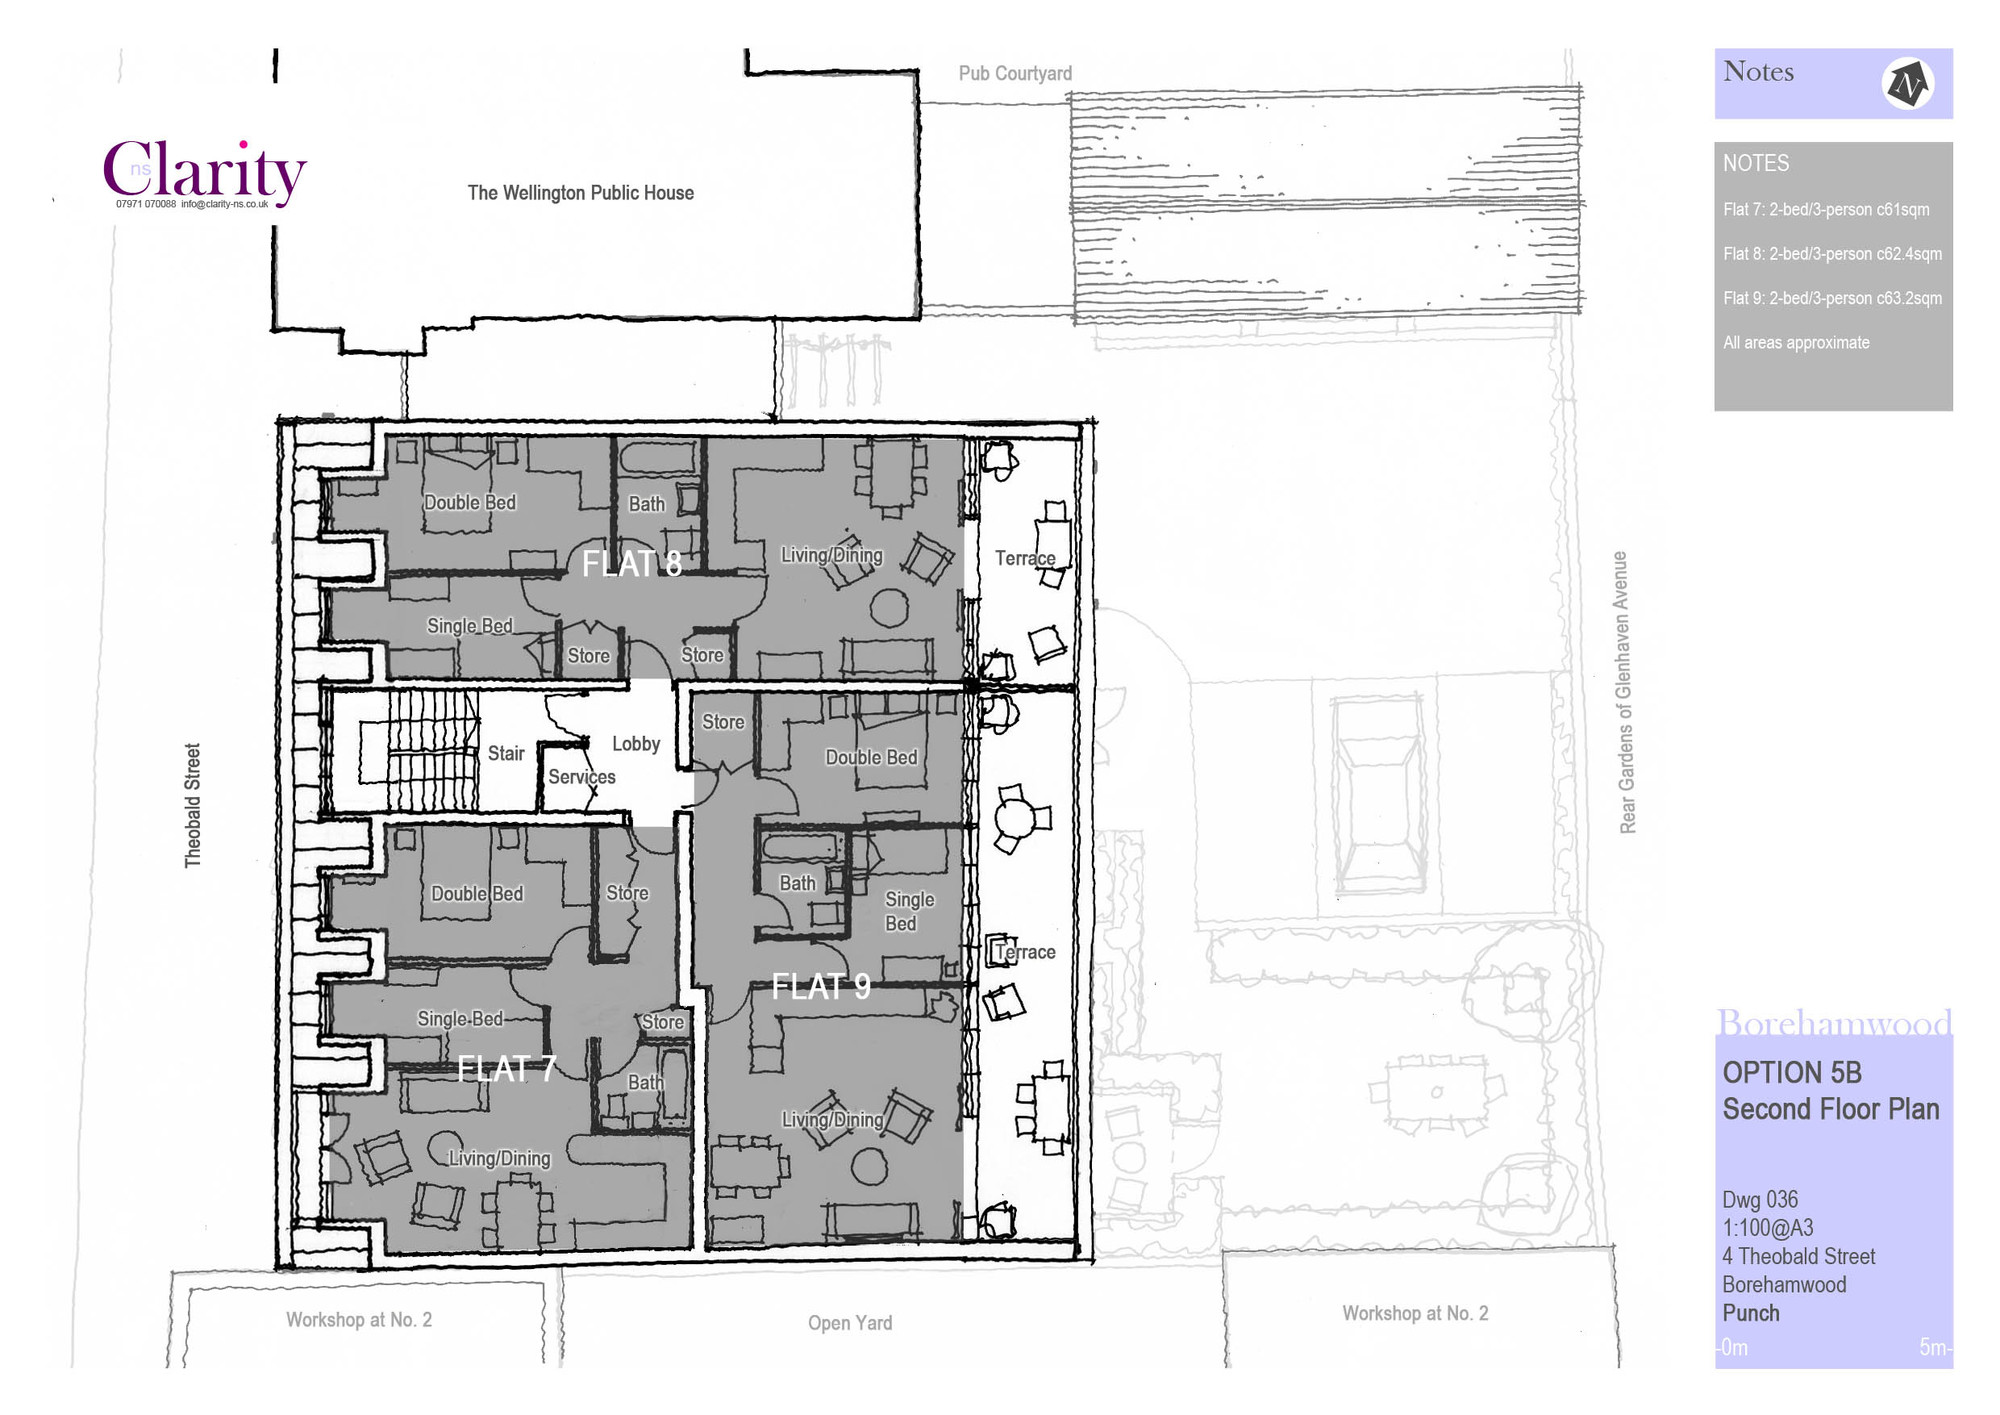 036 option 5b second floor plan